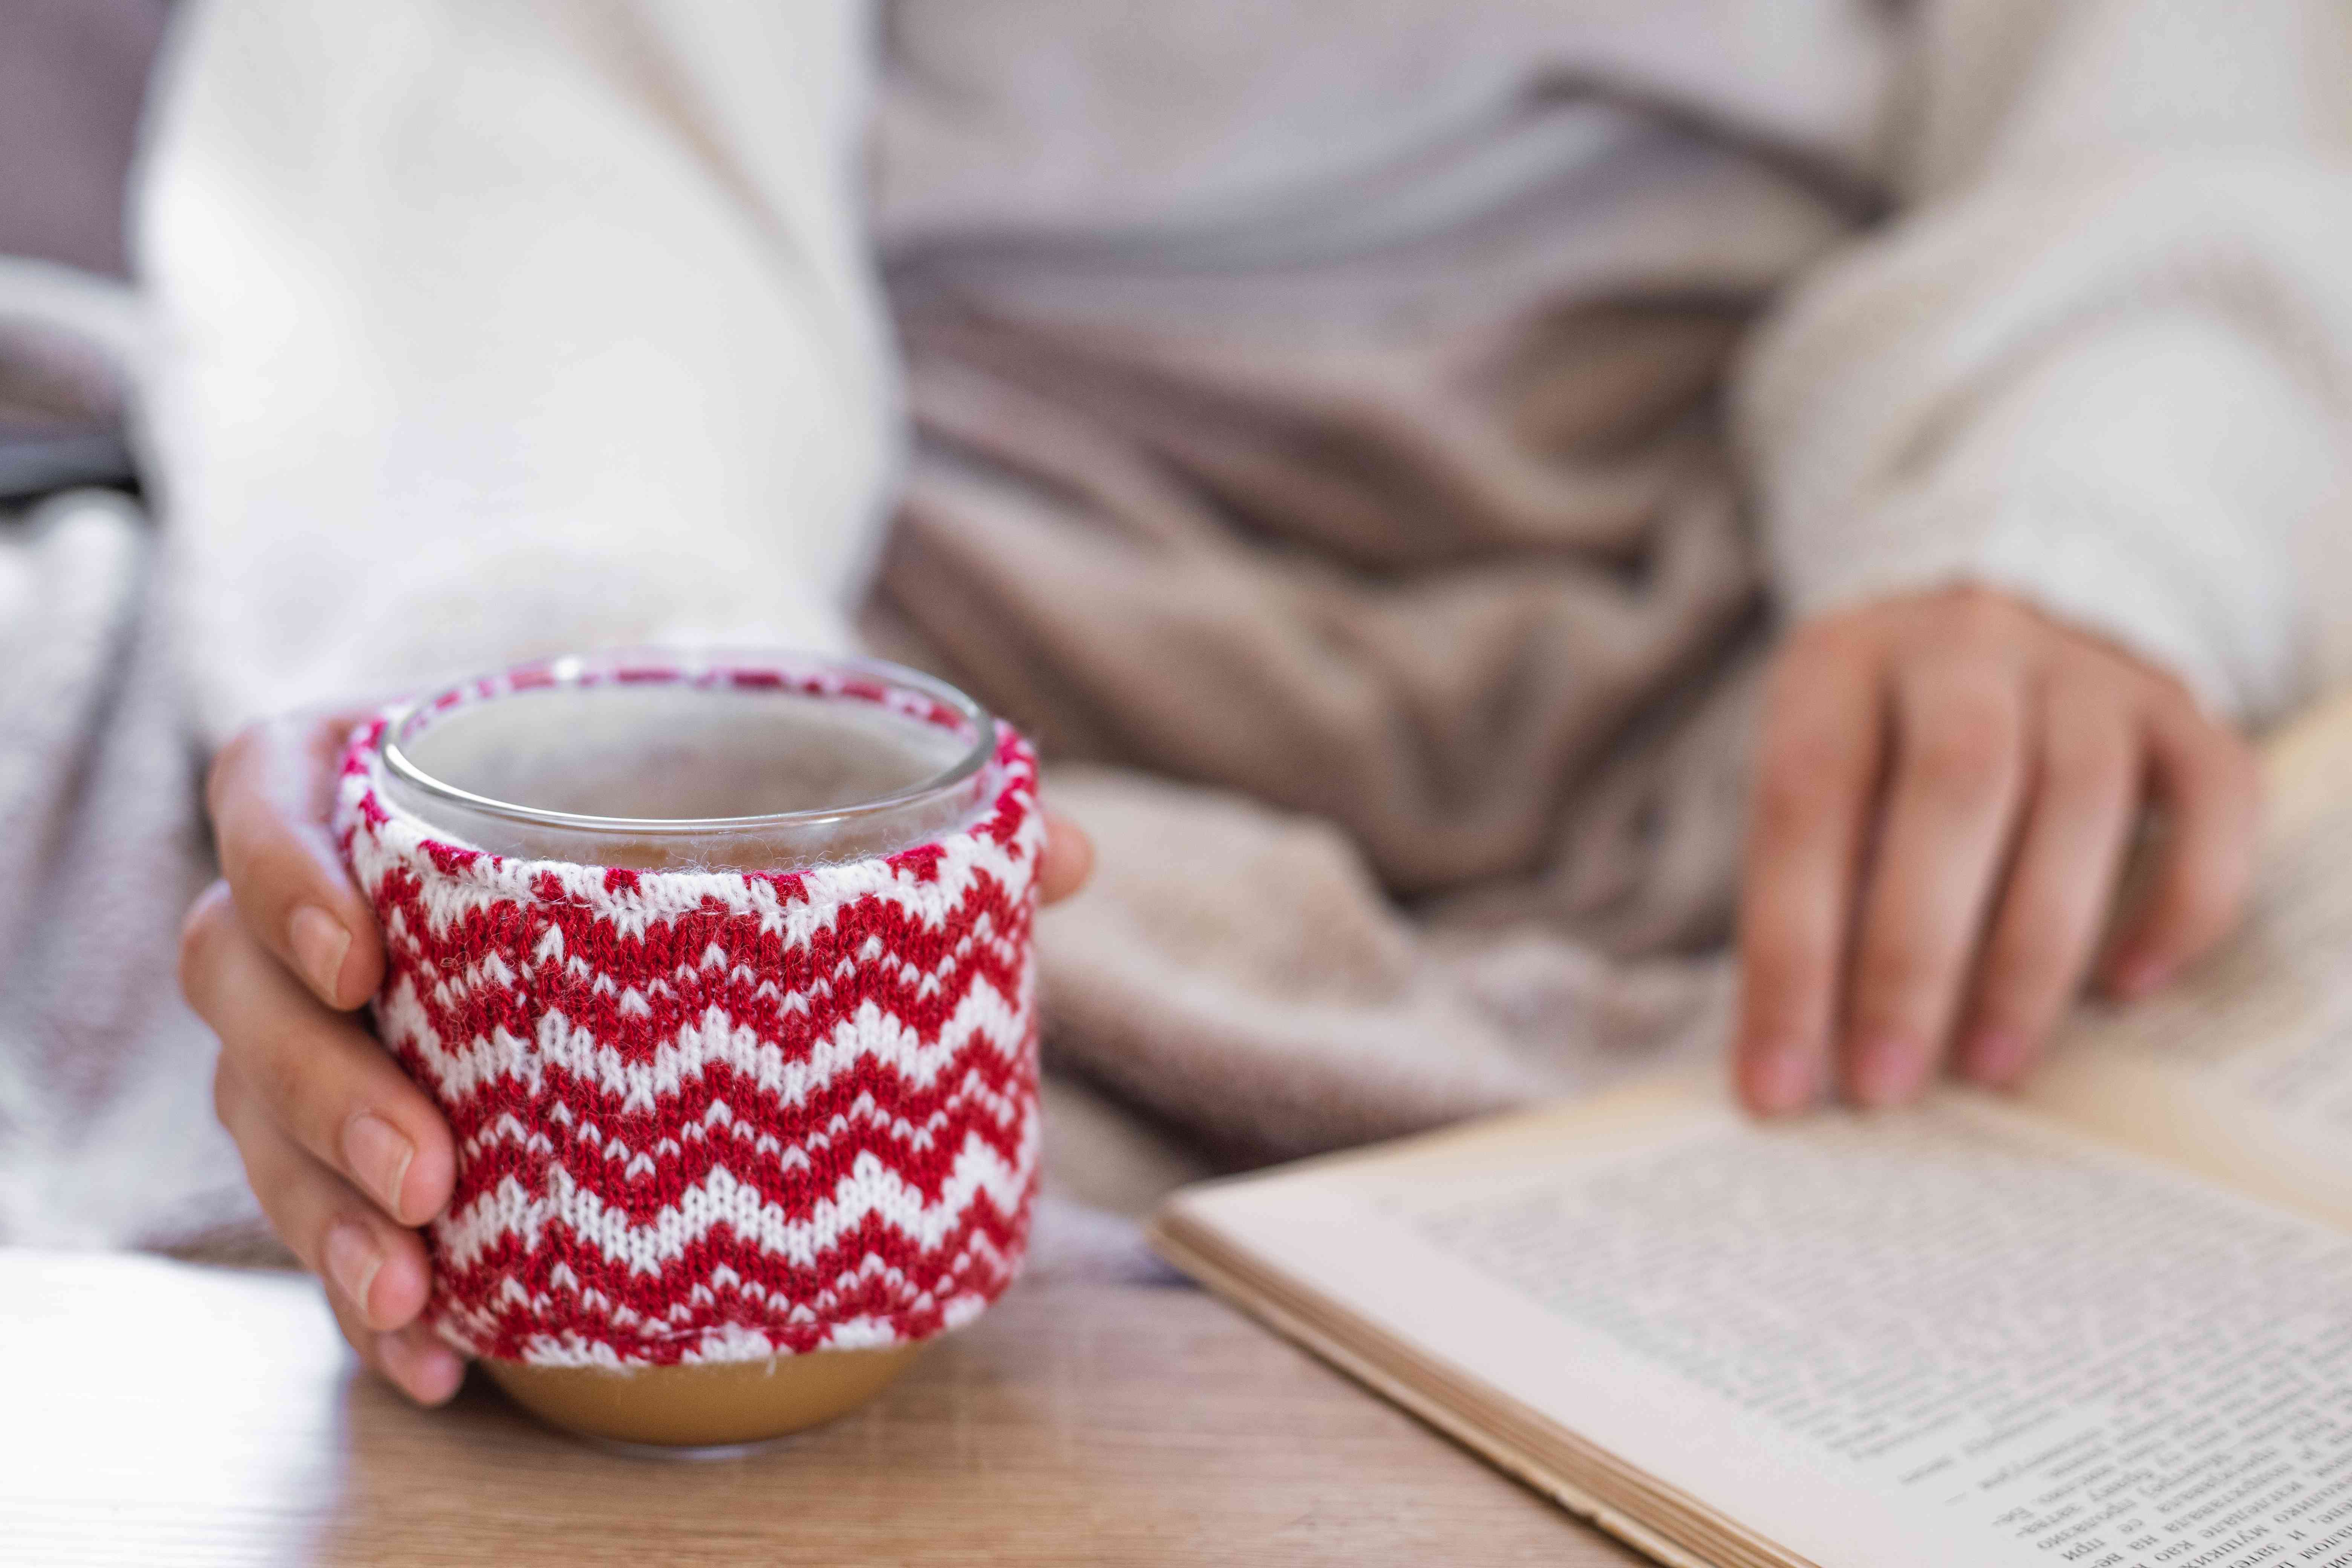 person holds hot beverage in red-and-white sweater cozy while reading book